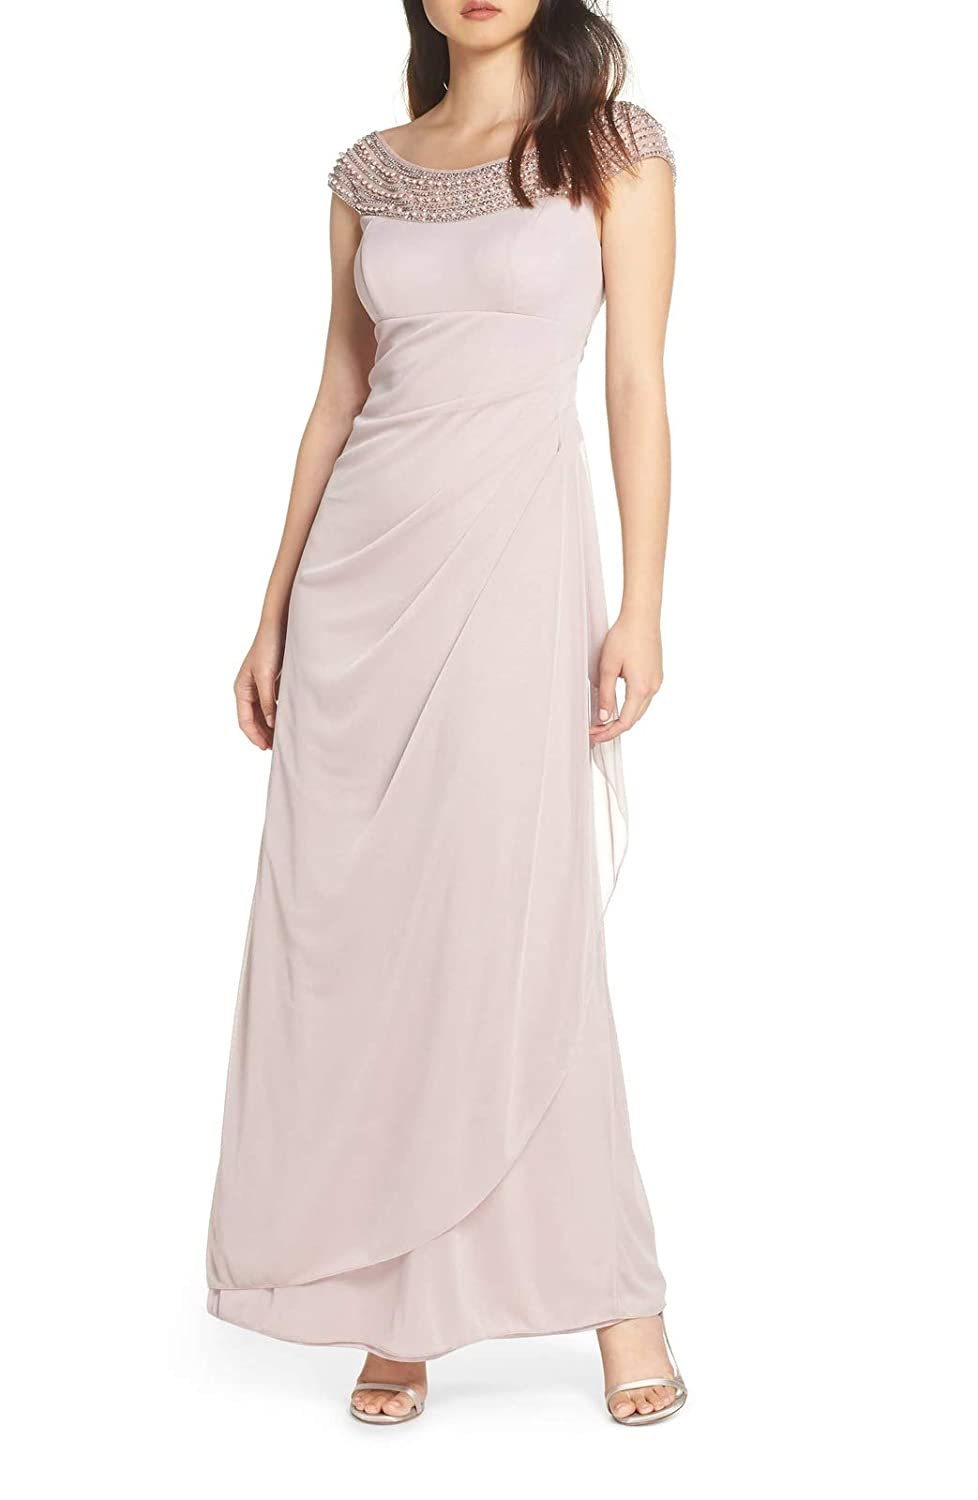 Pink Aisahnglina Women's Stunning Pears Beaded Neckline Embellished Evening Gown Cocktail Party Night Dress Plus Size